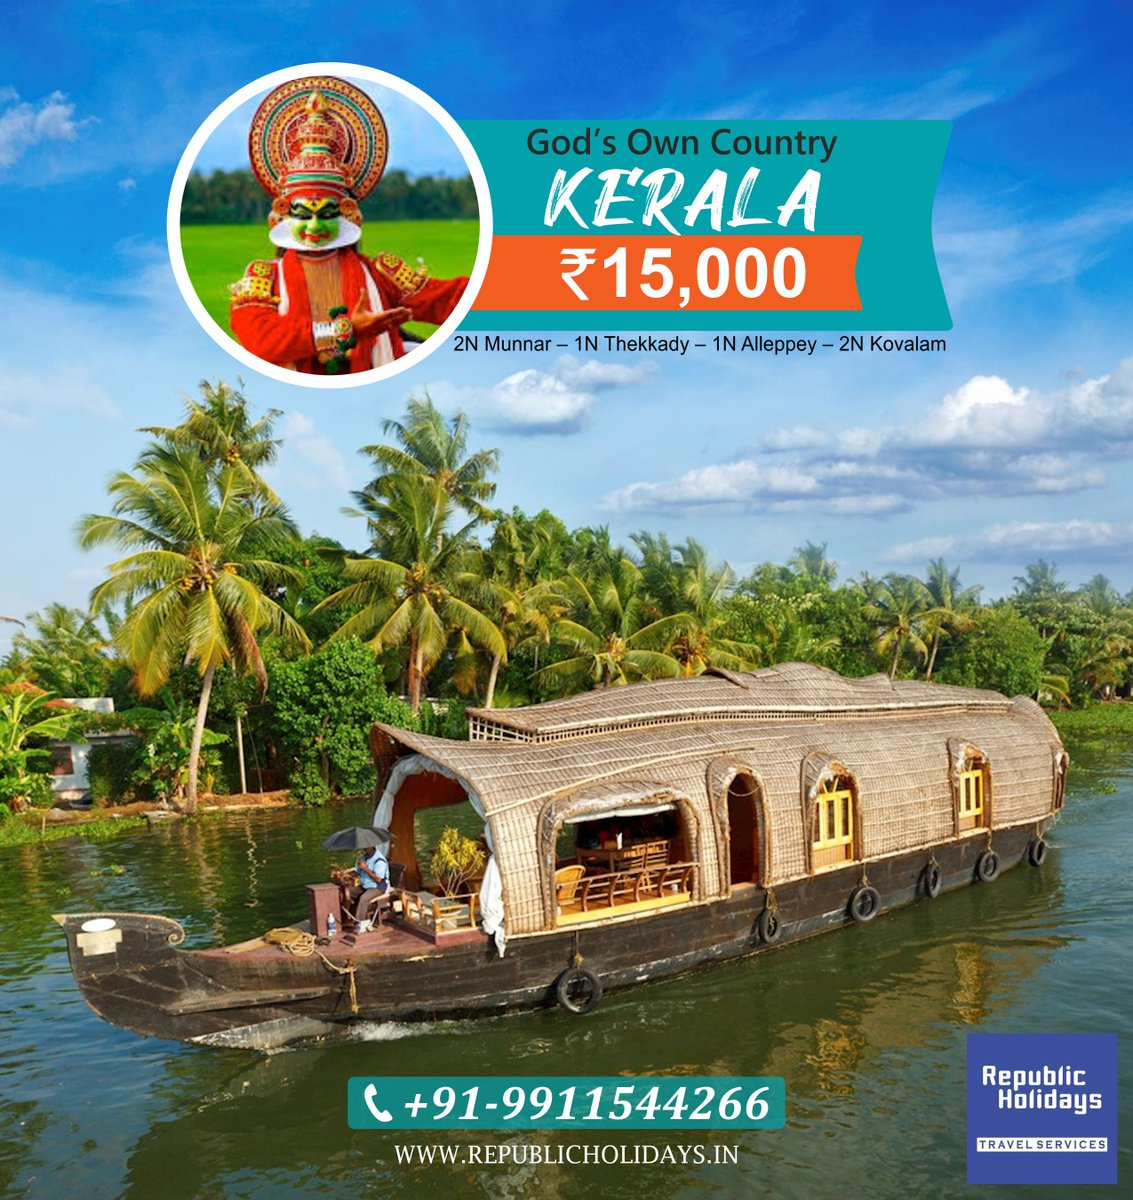 God's Own Country - Kerala Make your Kerala holidays the best family vacation trip. #kerala #keralagram #godsowncountry #Munnar #Thekkady #Alleppey #Kovalam #keralatour #keralatourism #keraladiaries #keralatrip #holidays #vacation #trip #honeymoon #keralapackage #republicholidays